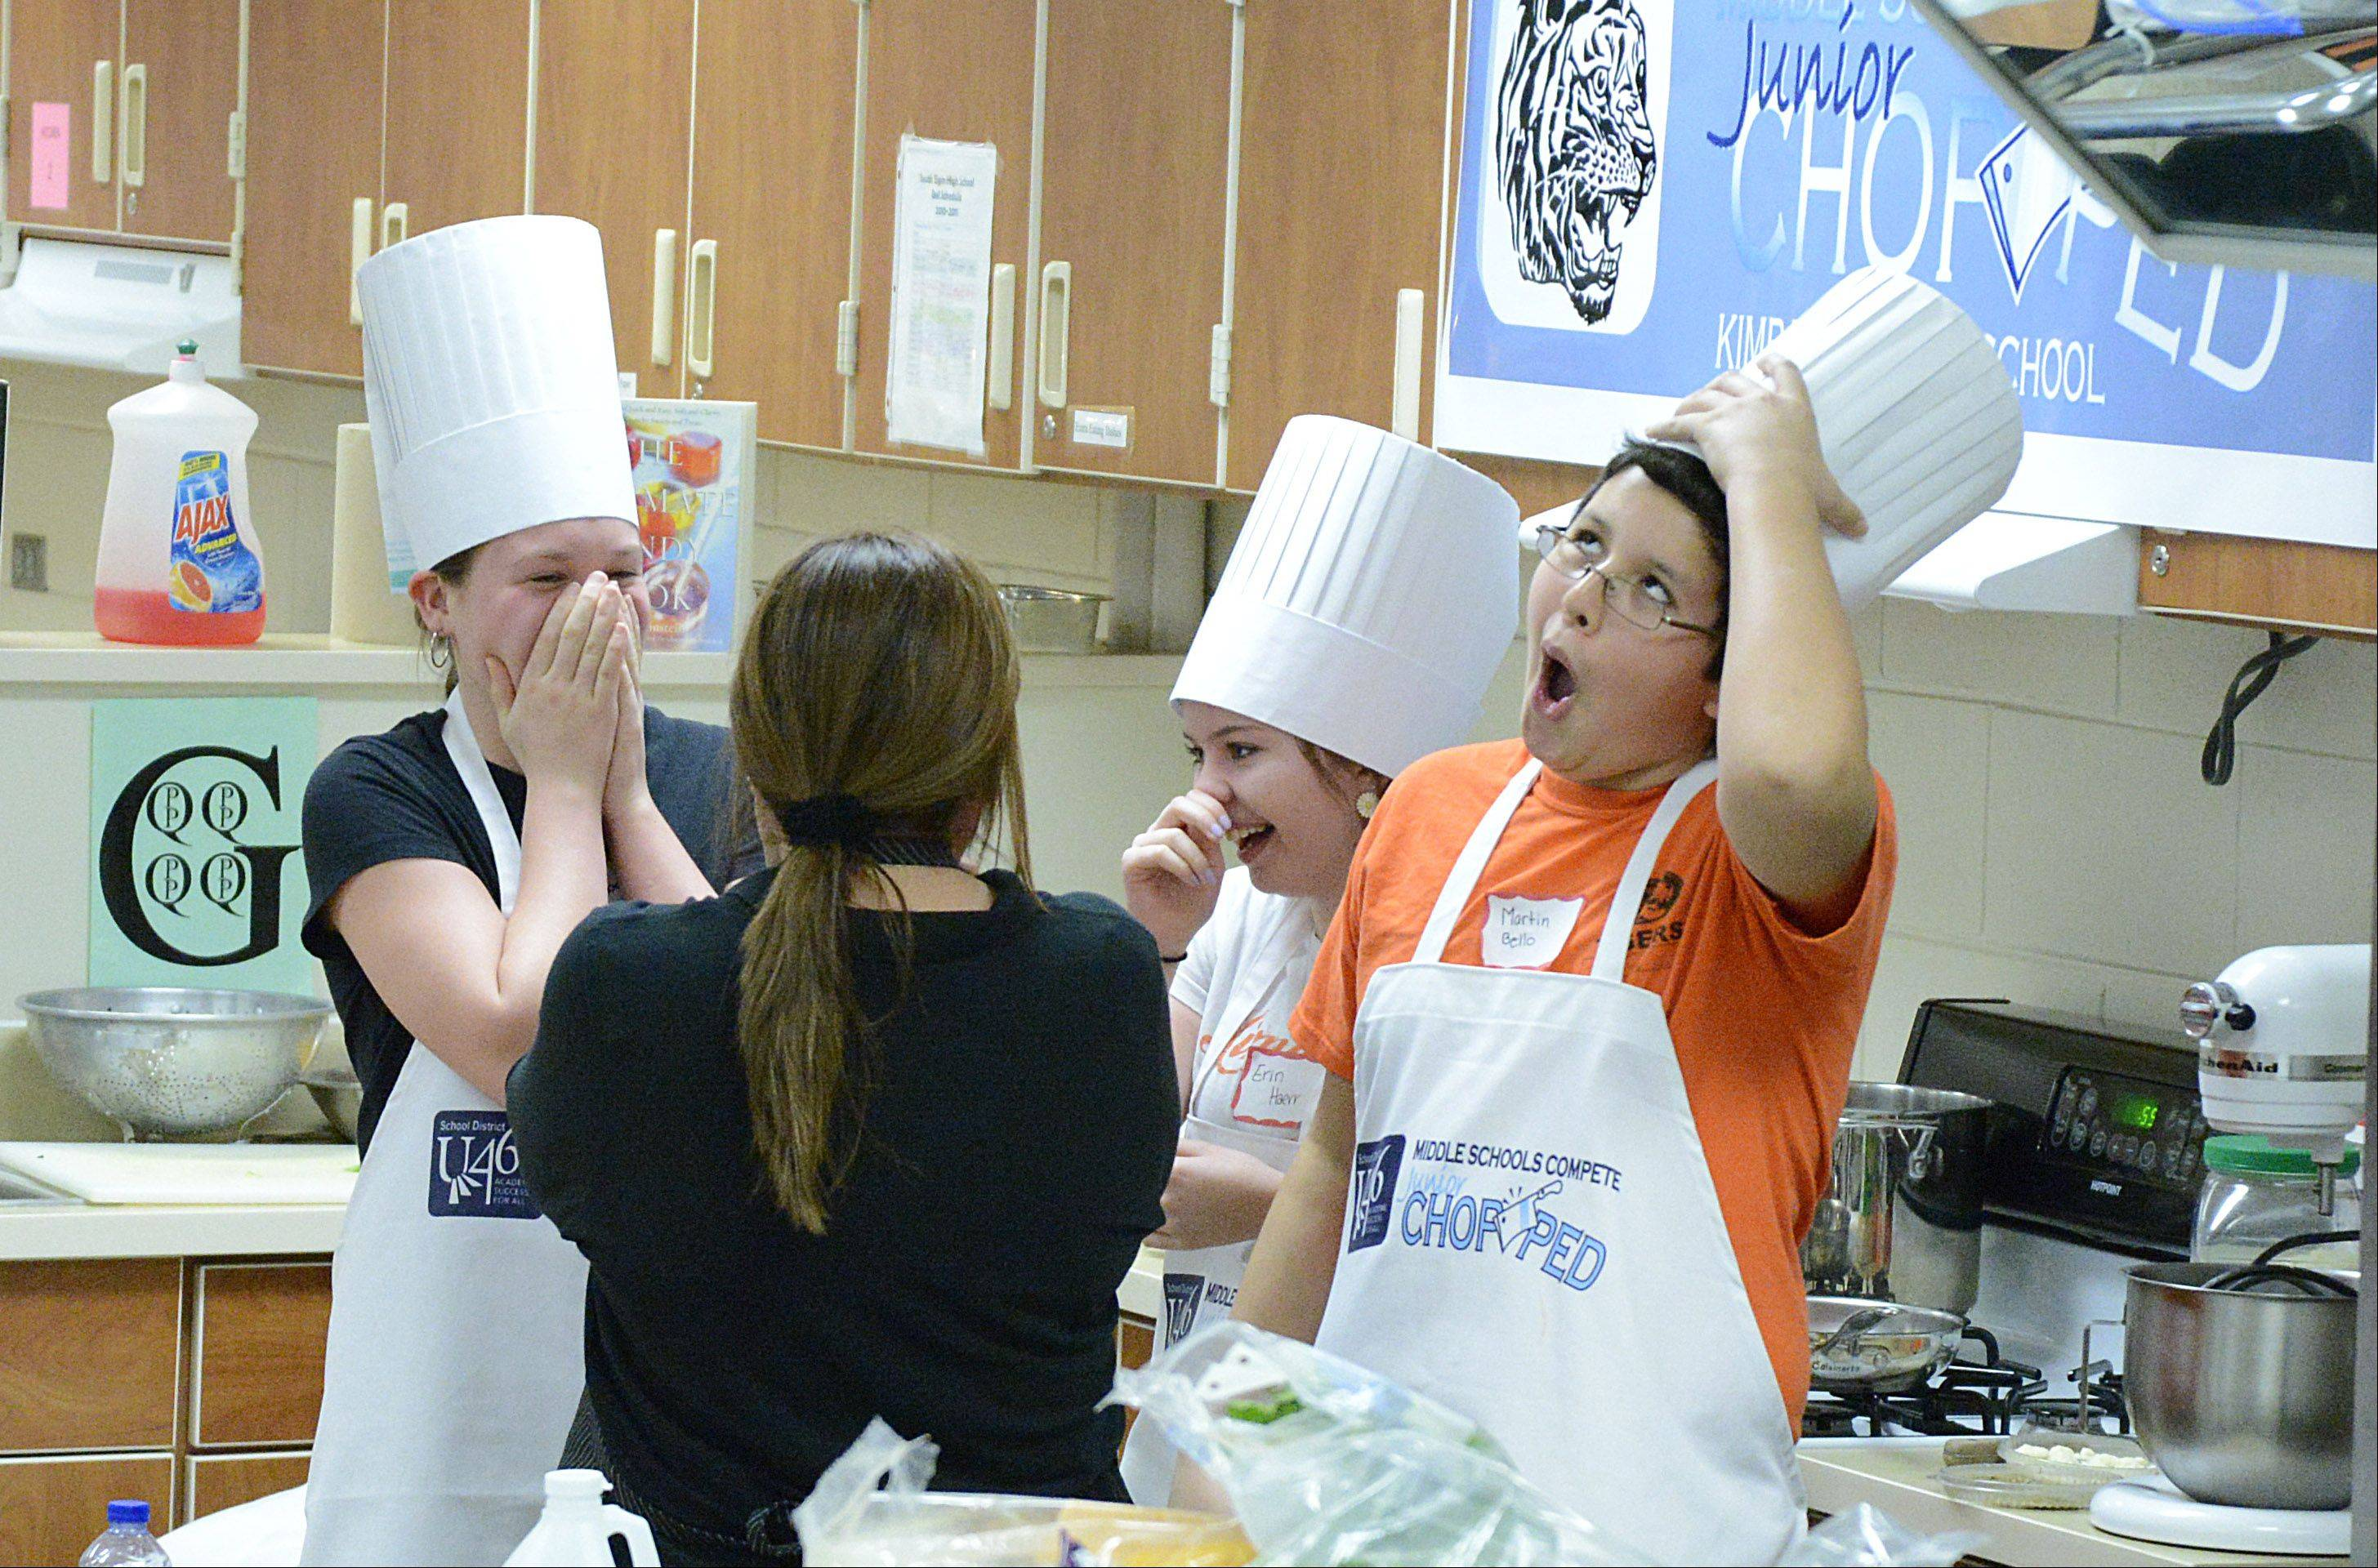 The Swaggy Choppers team of Kimball Middle School -- Allison Marsh, 13, Erin Haerr, 13, and Martin Bello, 14, were named the winners of the Elgin Area School District U-46 Junior Chopped competition at South Elgin High School. Their coach was Maria Martinez (with her back to the camera).